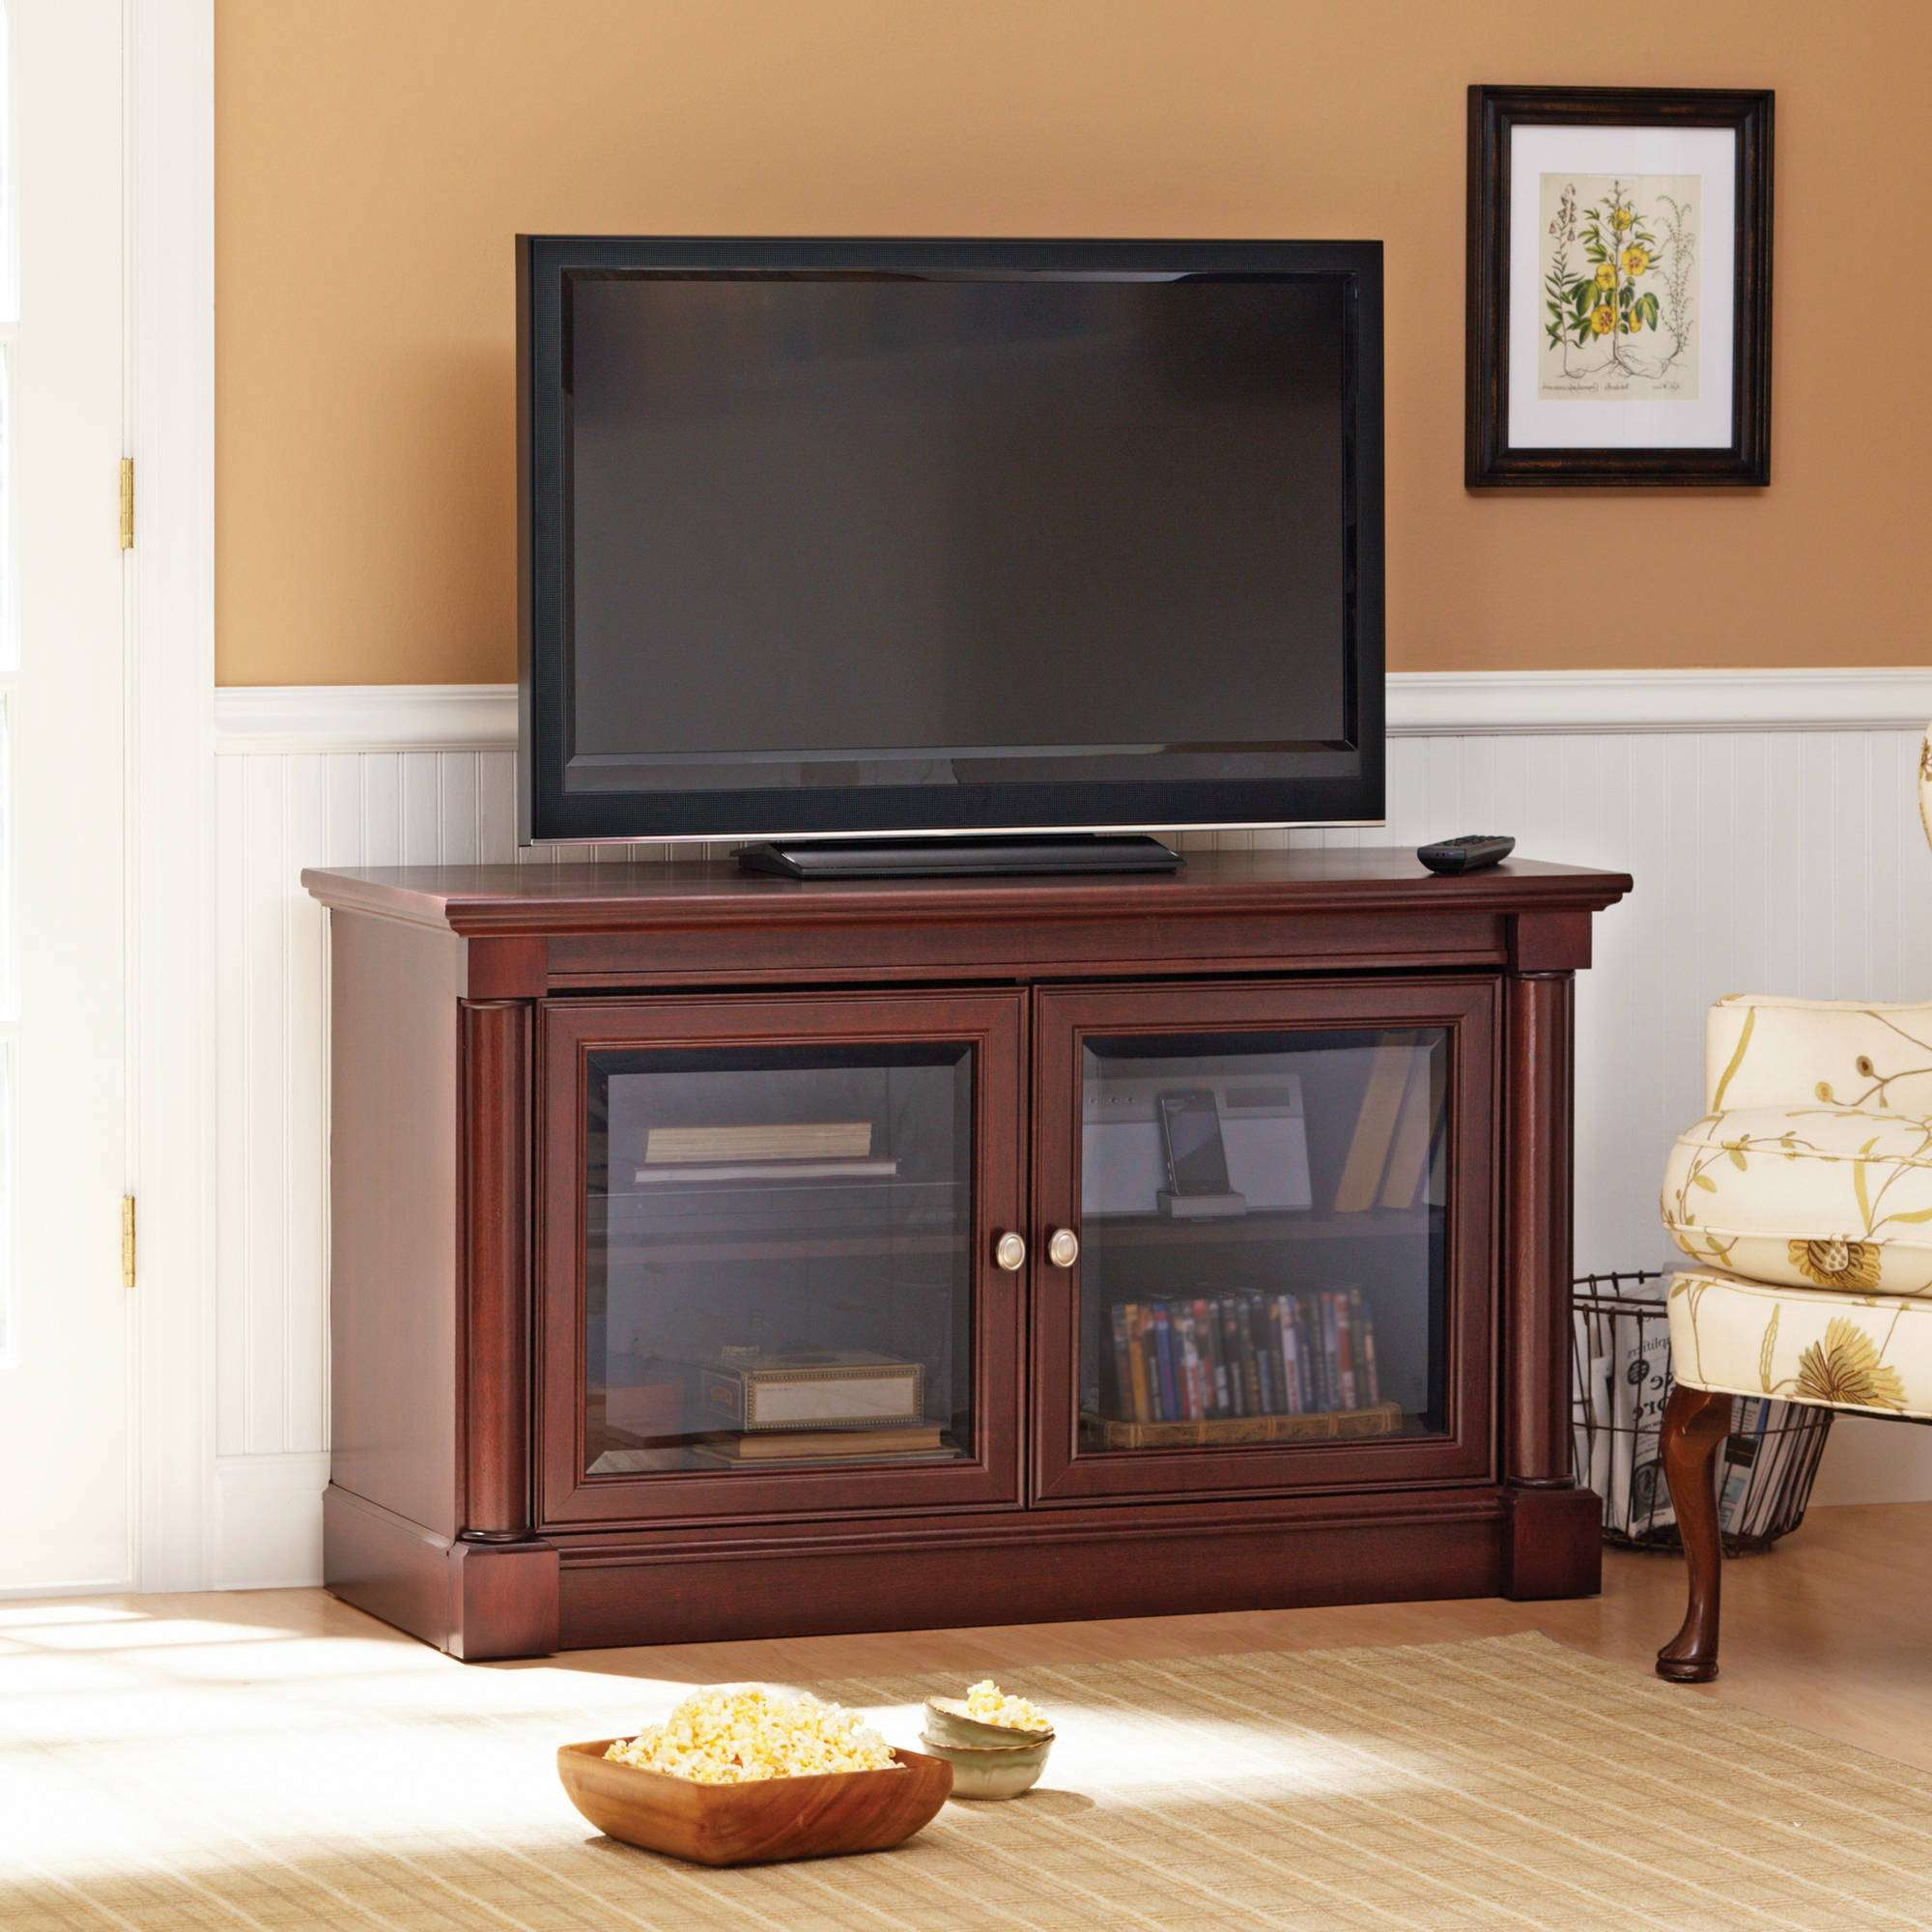 Better Homes And Gardens Ashwood Road Cherry Tv Stand, For Tvs Up Throughout Cherry Wood Tv Stands (View 4 of 15)